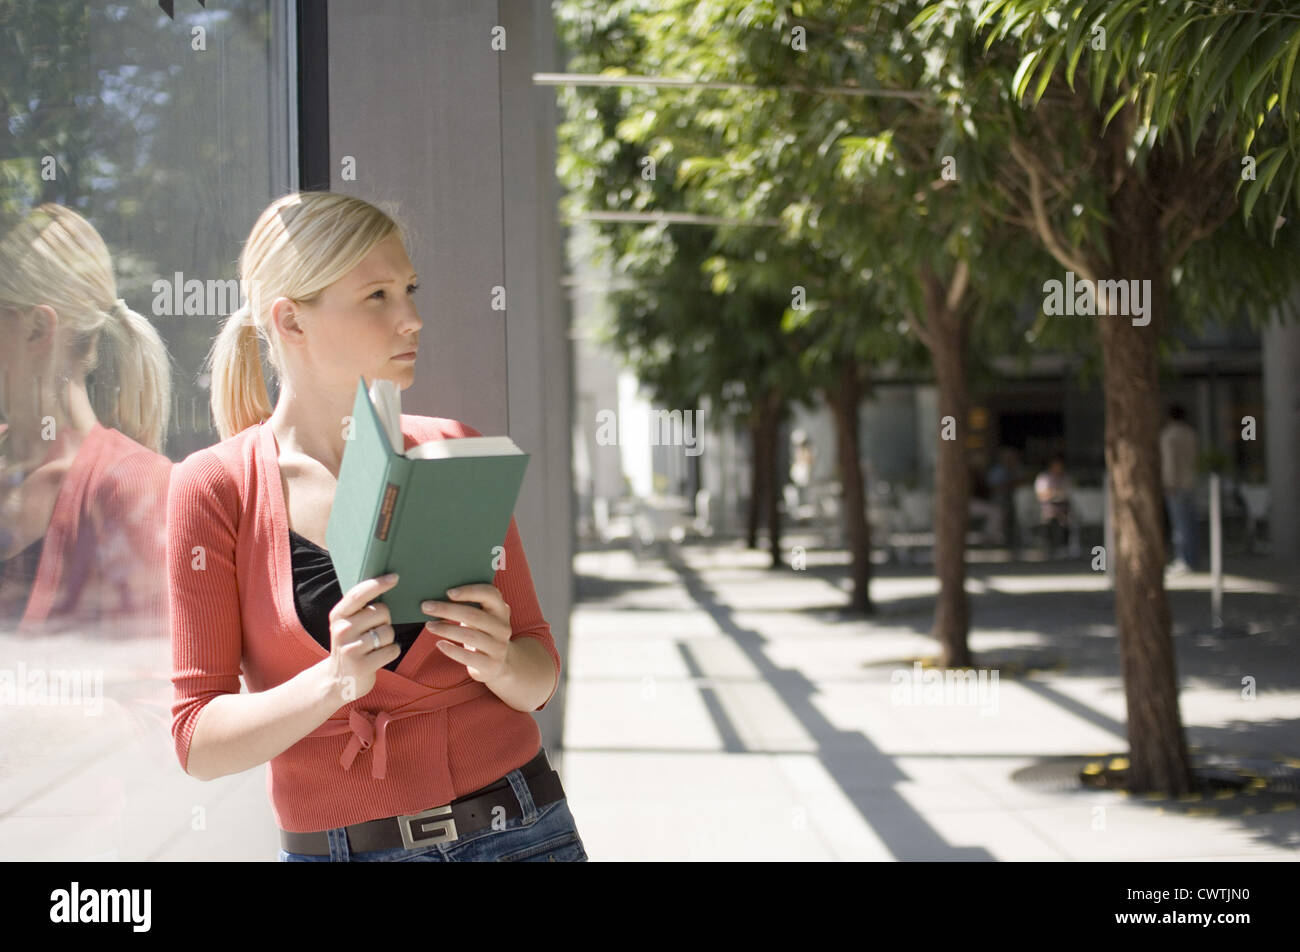 Young woman leaning against glass wall reading book - Stock Image